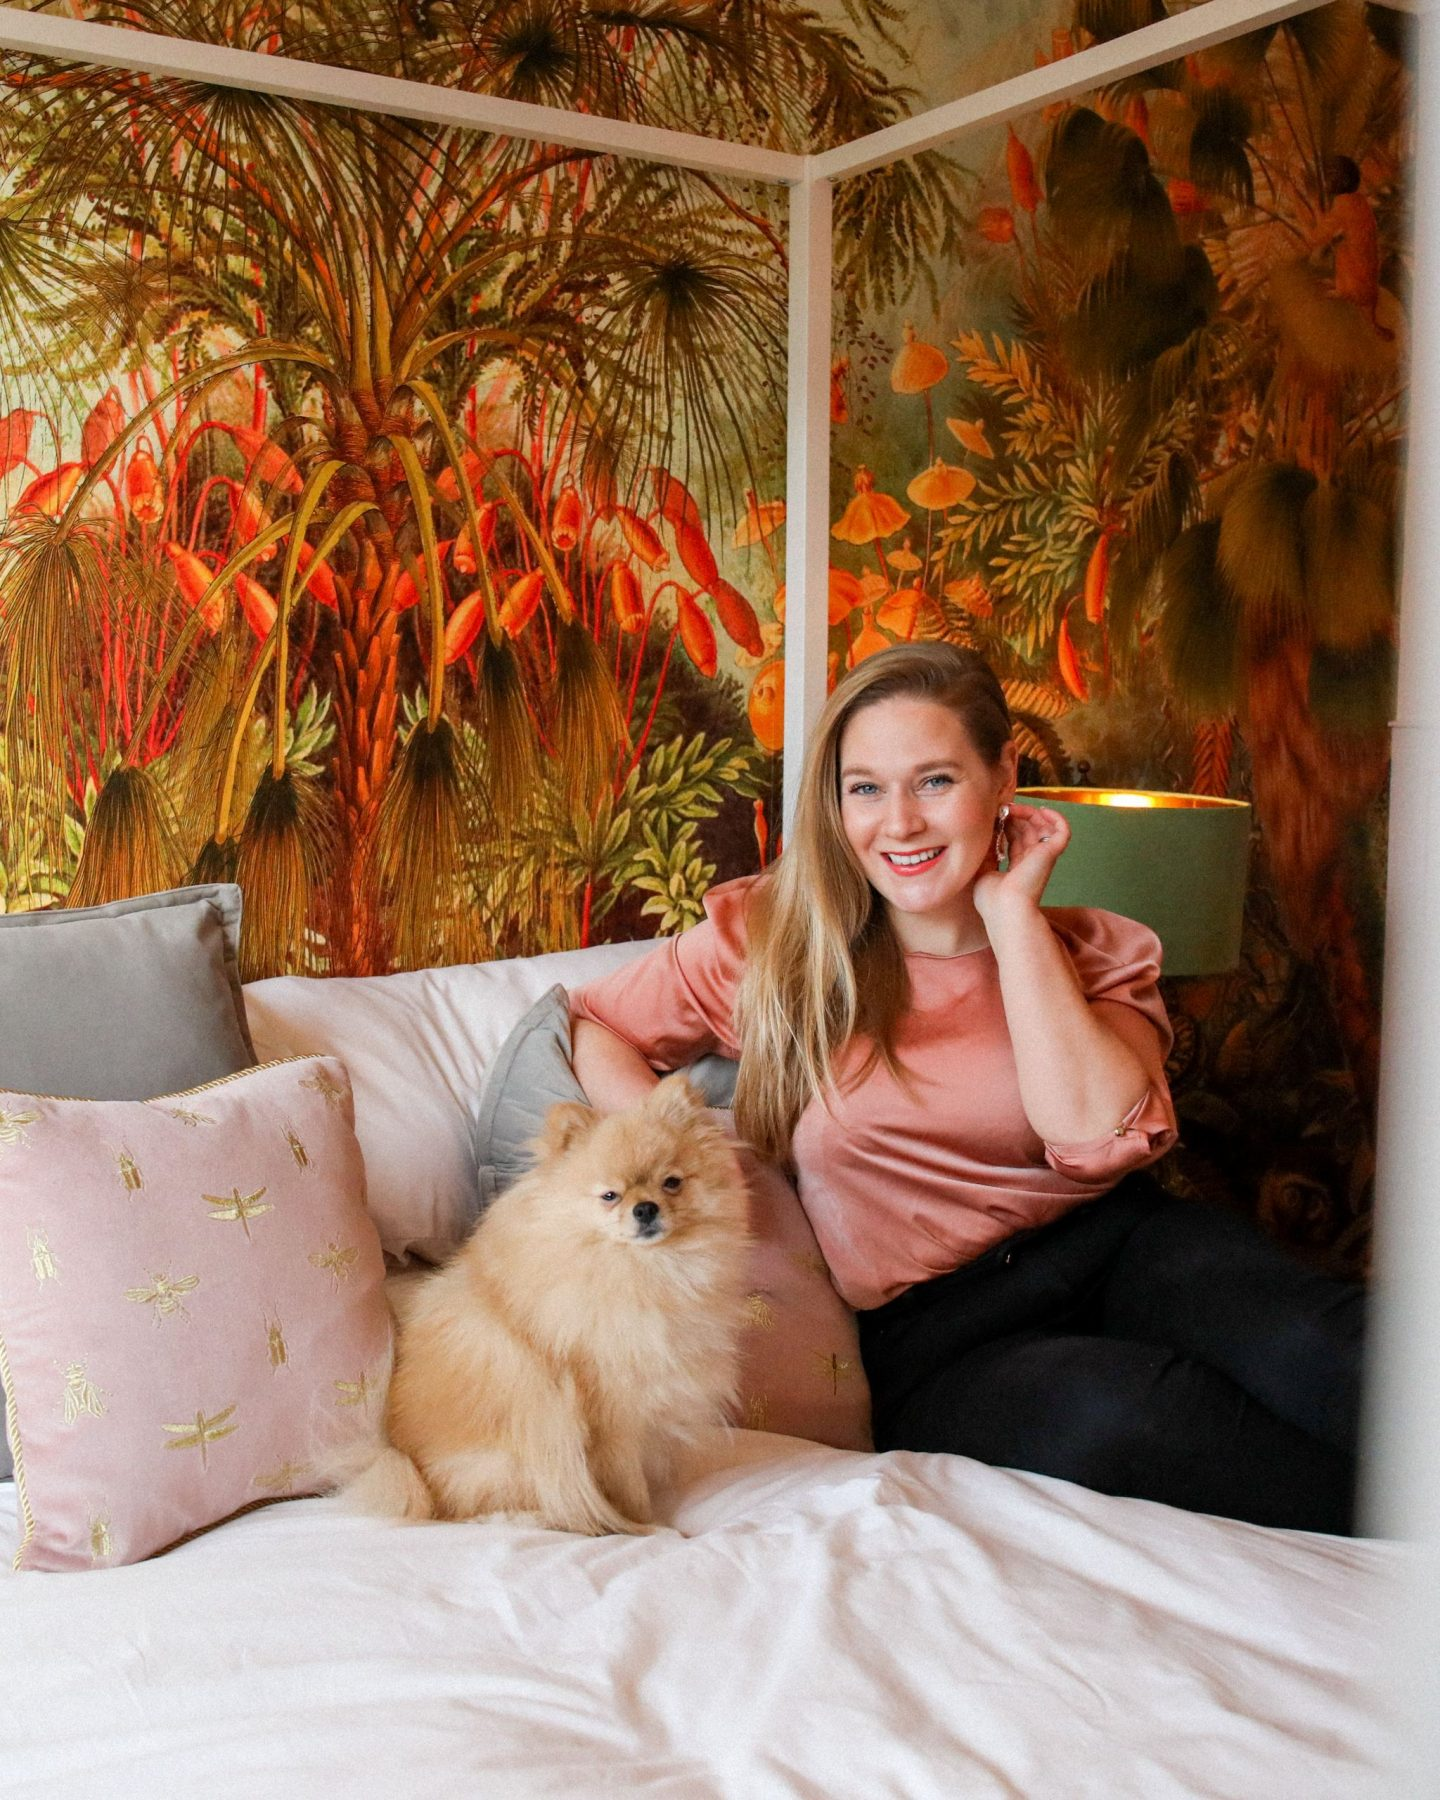 The Jungle Room Reveal | Guest Room Makeover